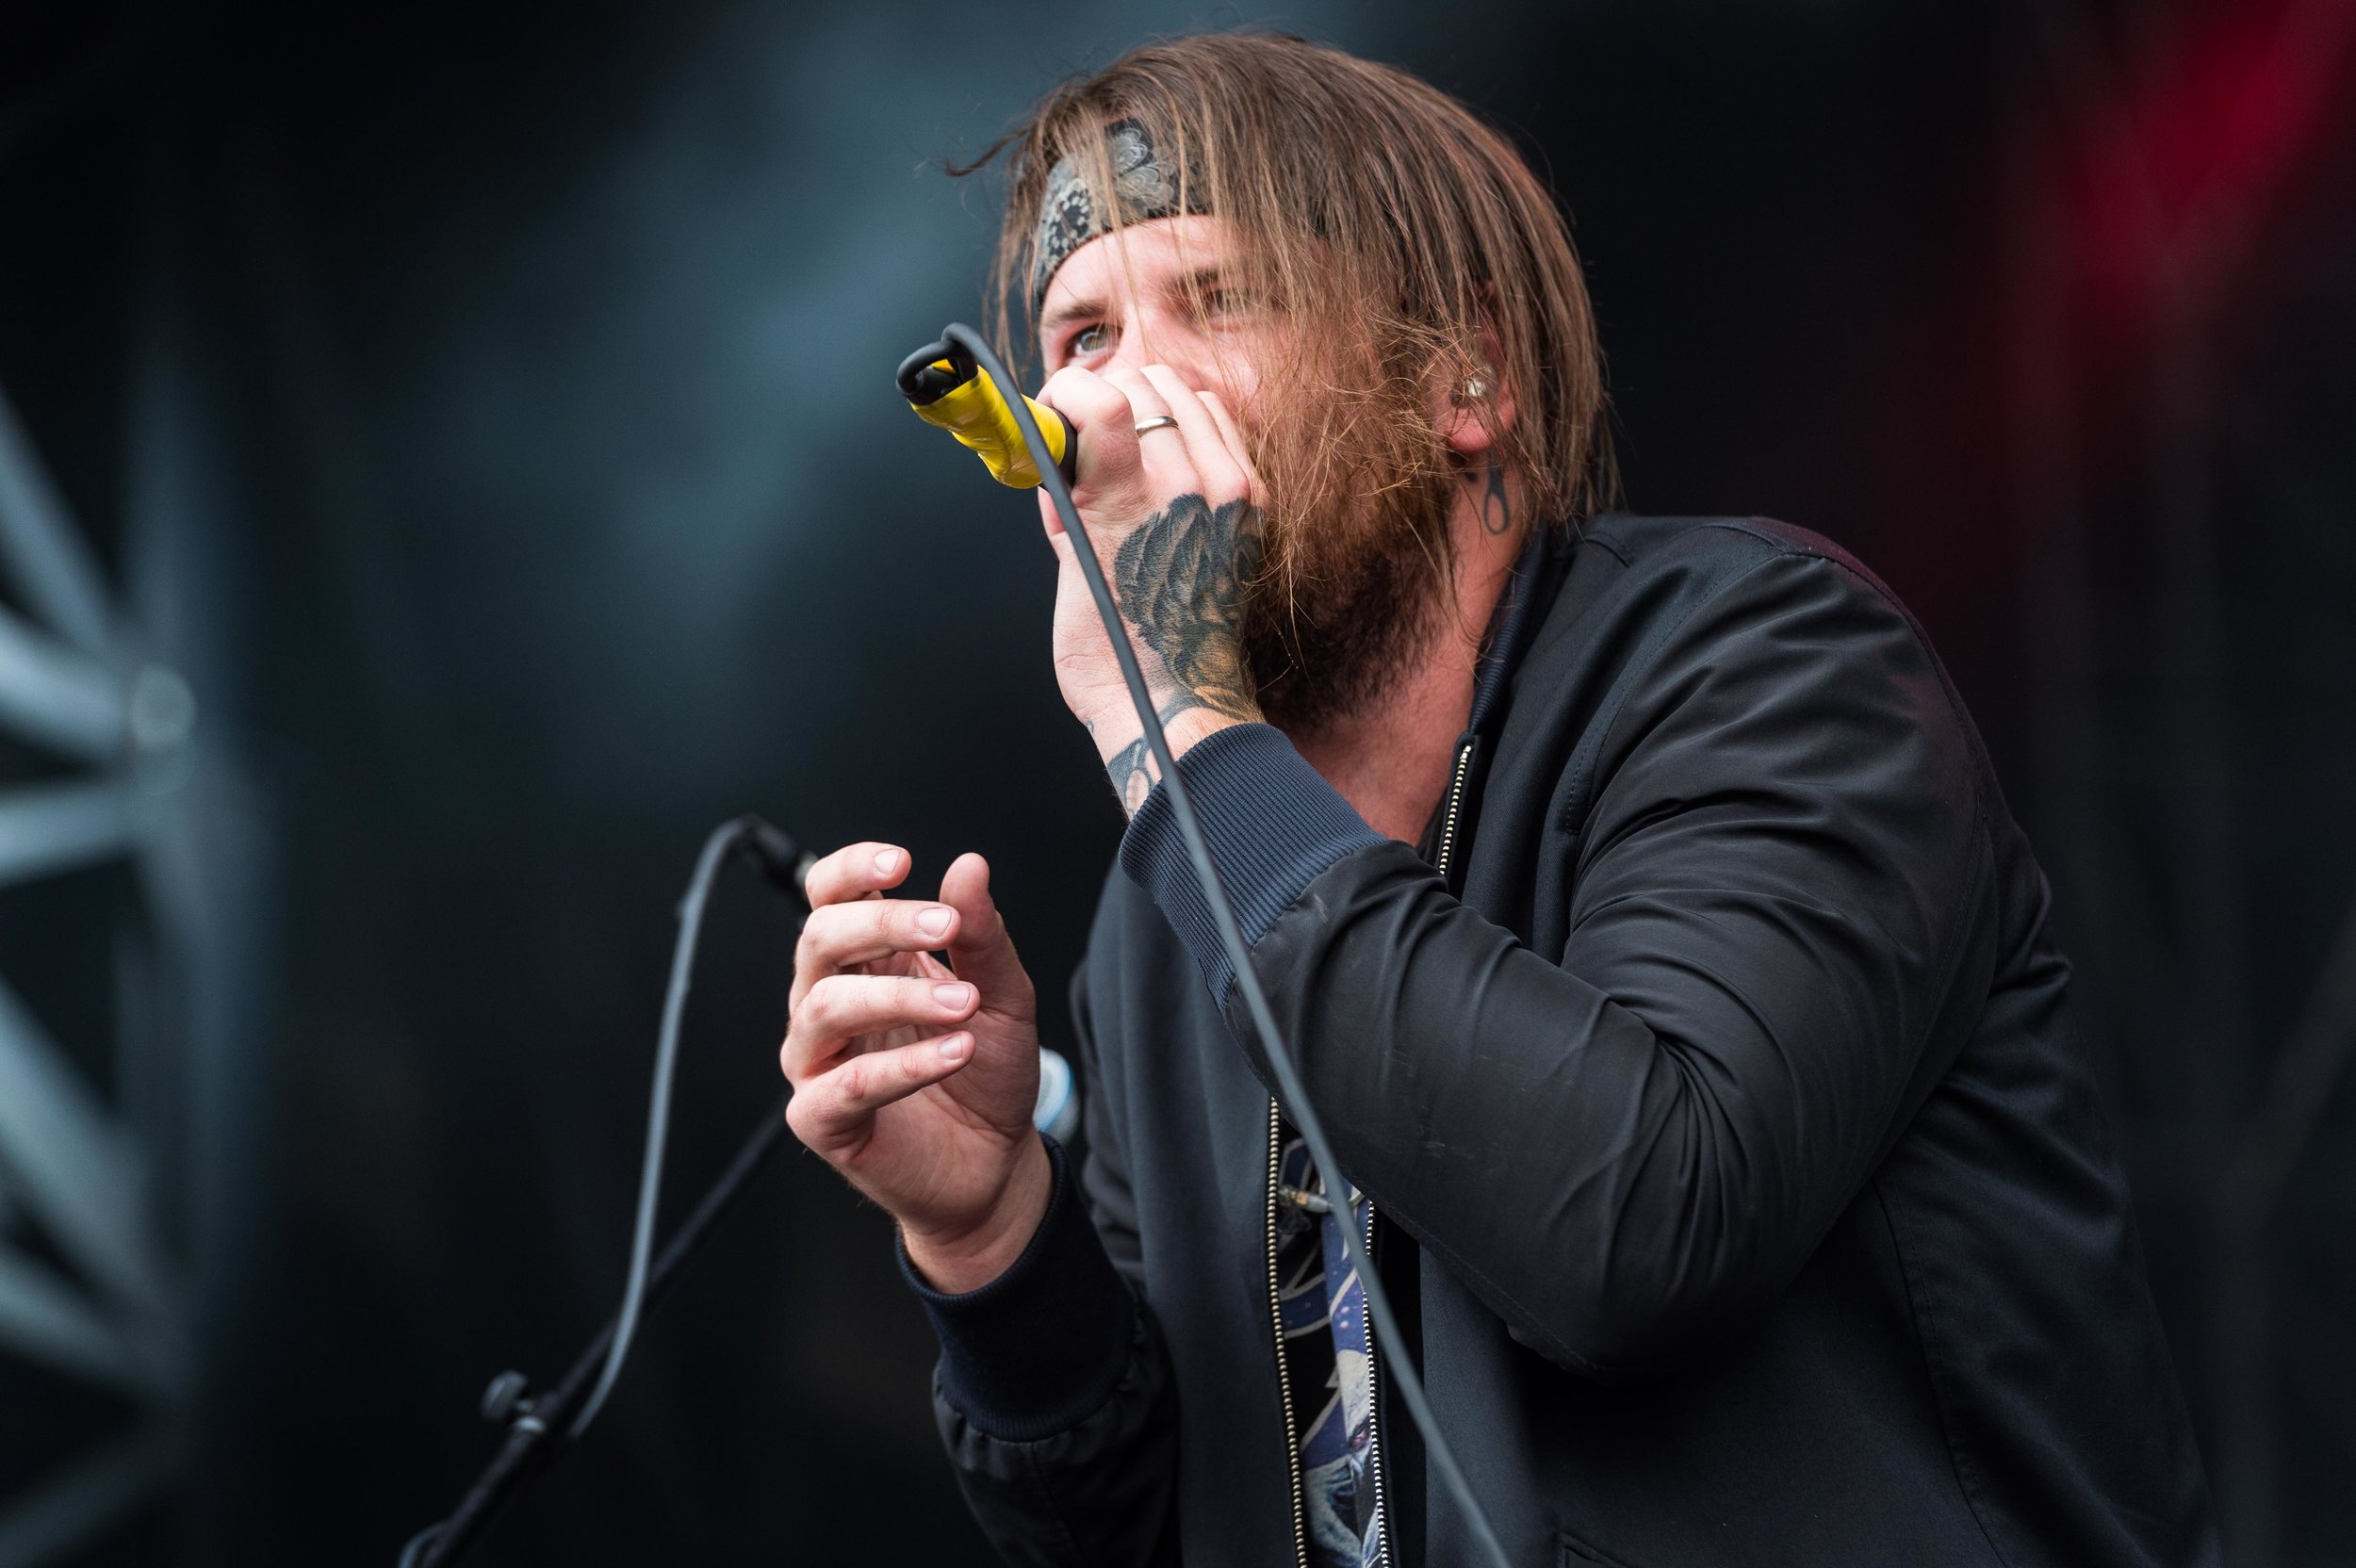 Beartooth LTL Festival Oct 1 2017-6.jpg